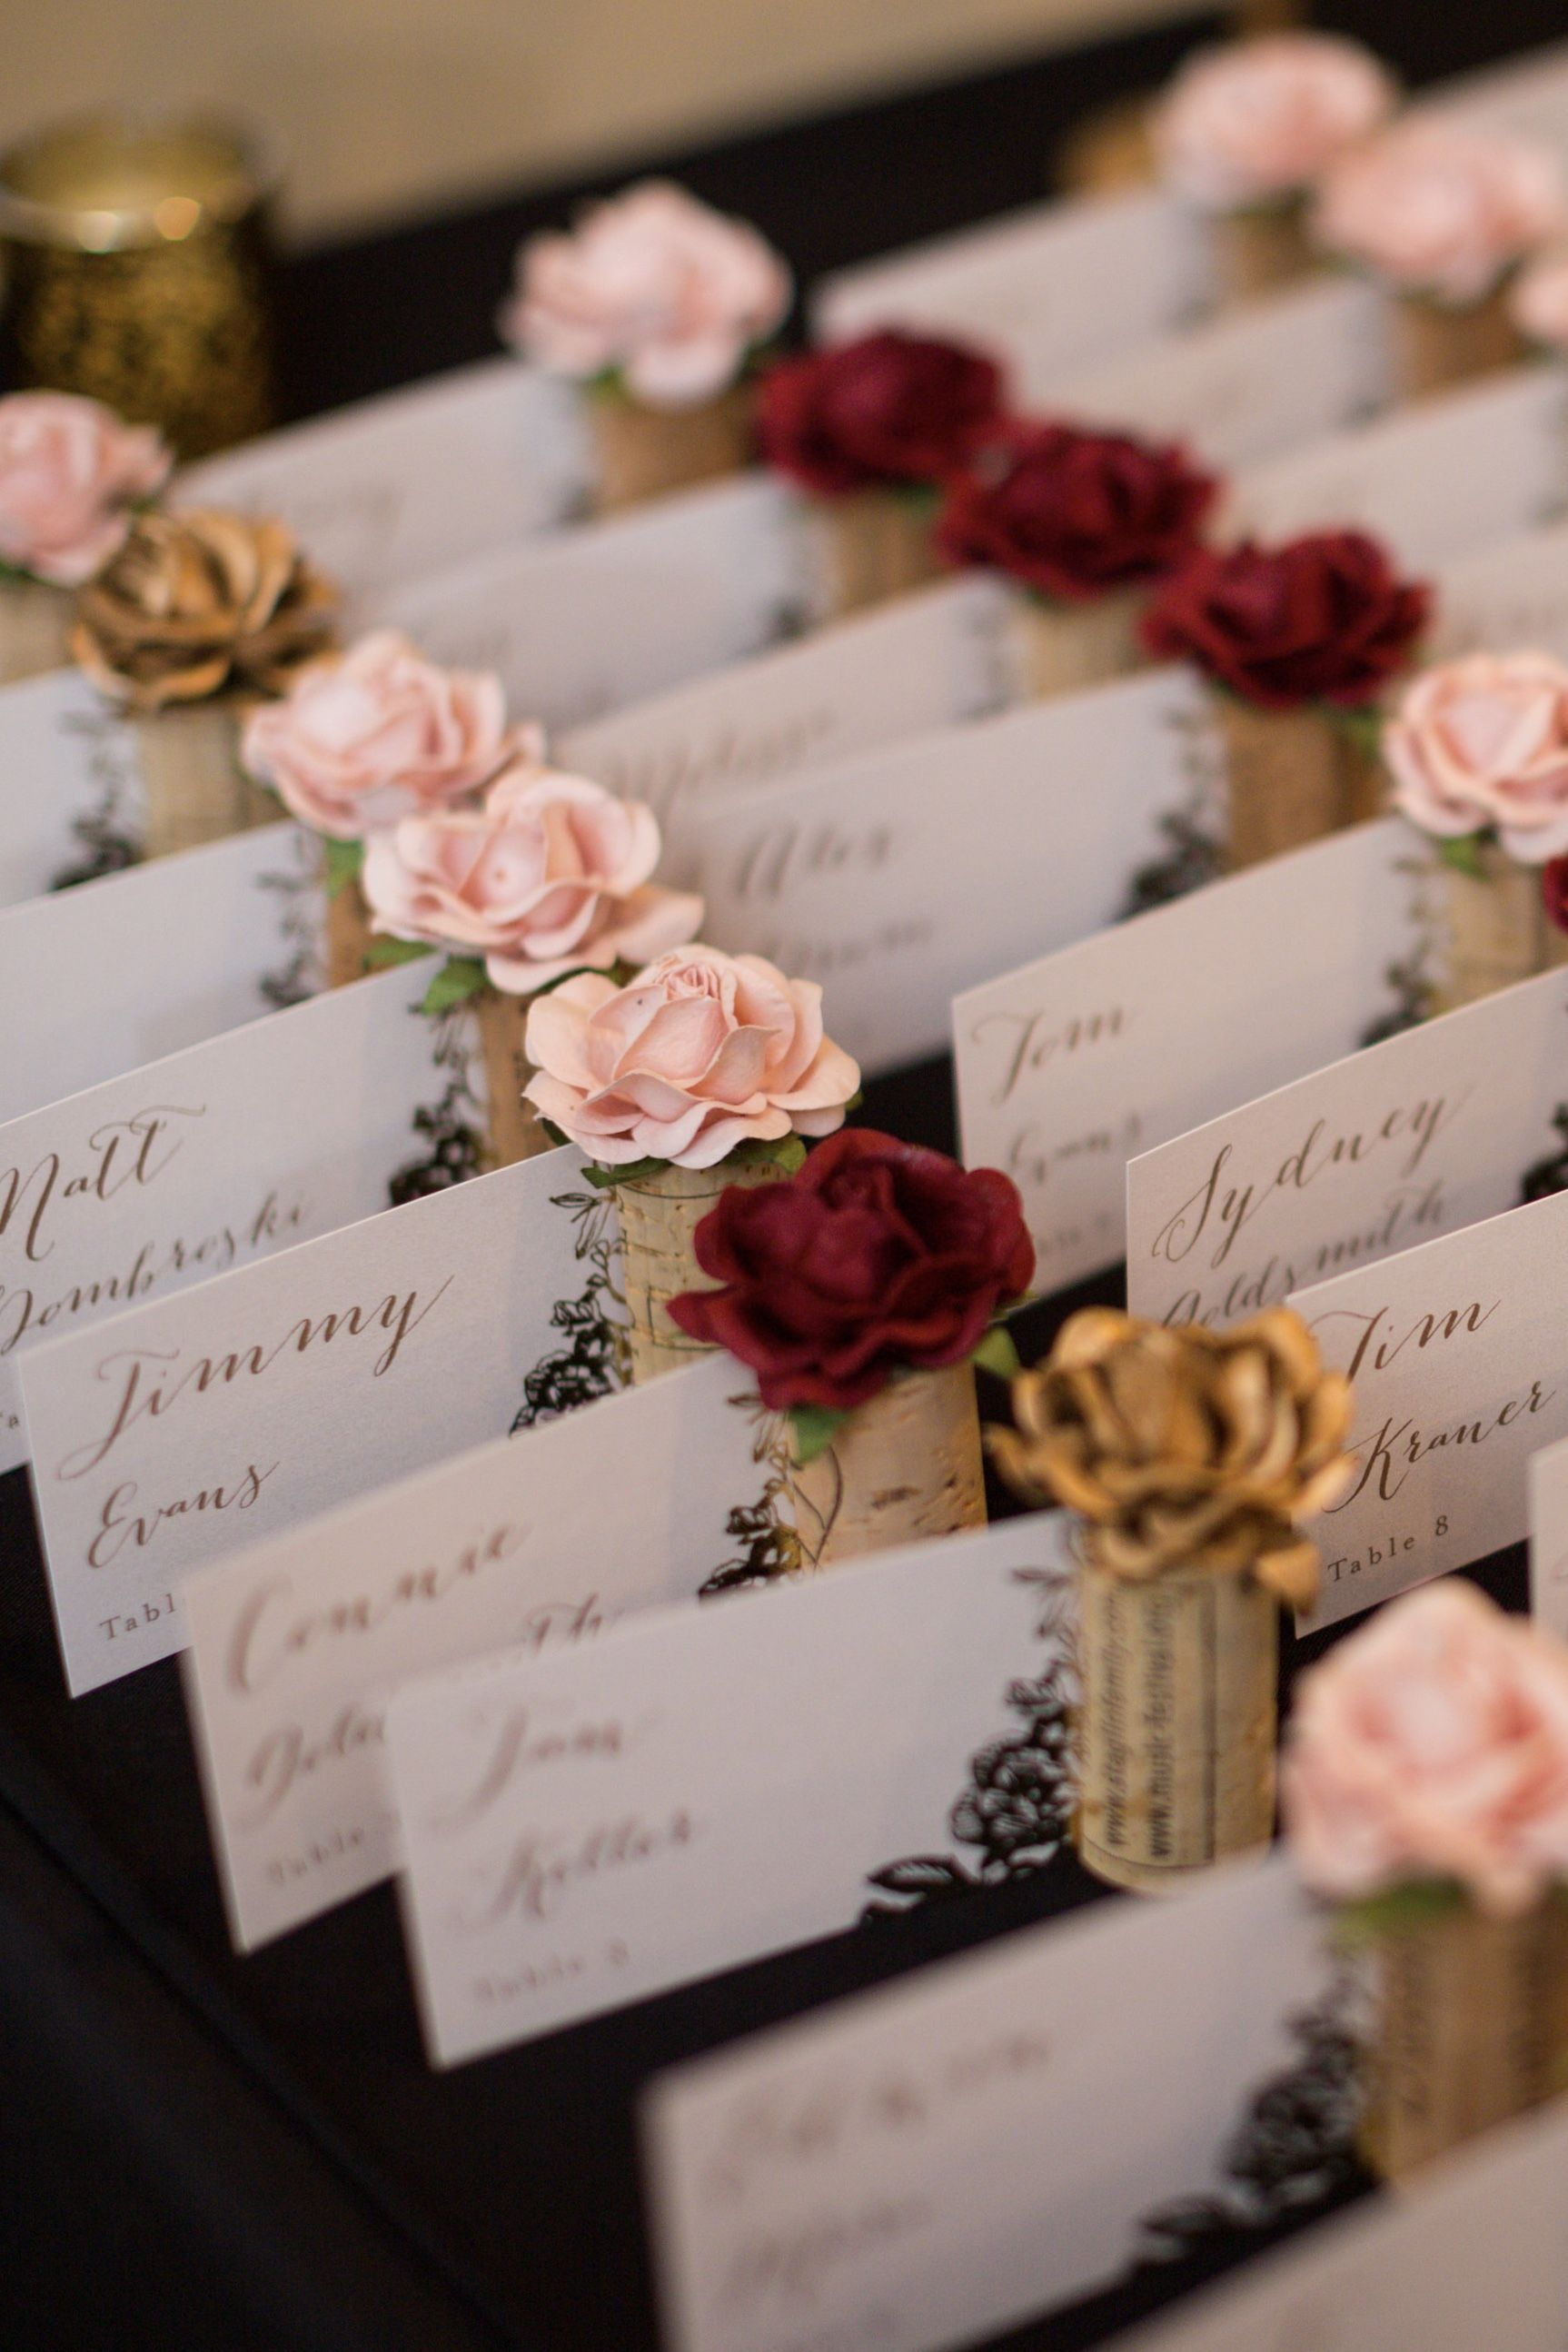 Wedding Place Card Holder Place Card Holders Wedding Wedding Place Cards Wedding Name Cards